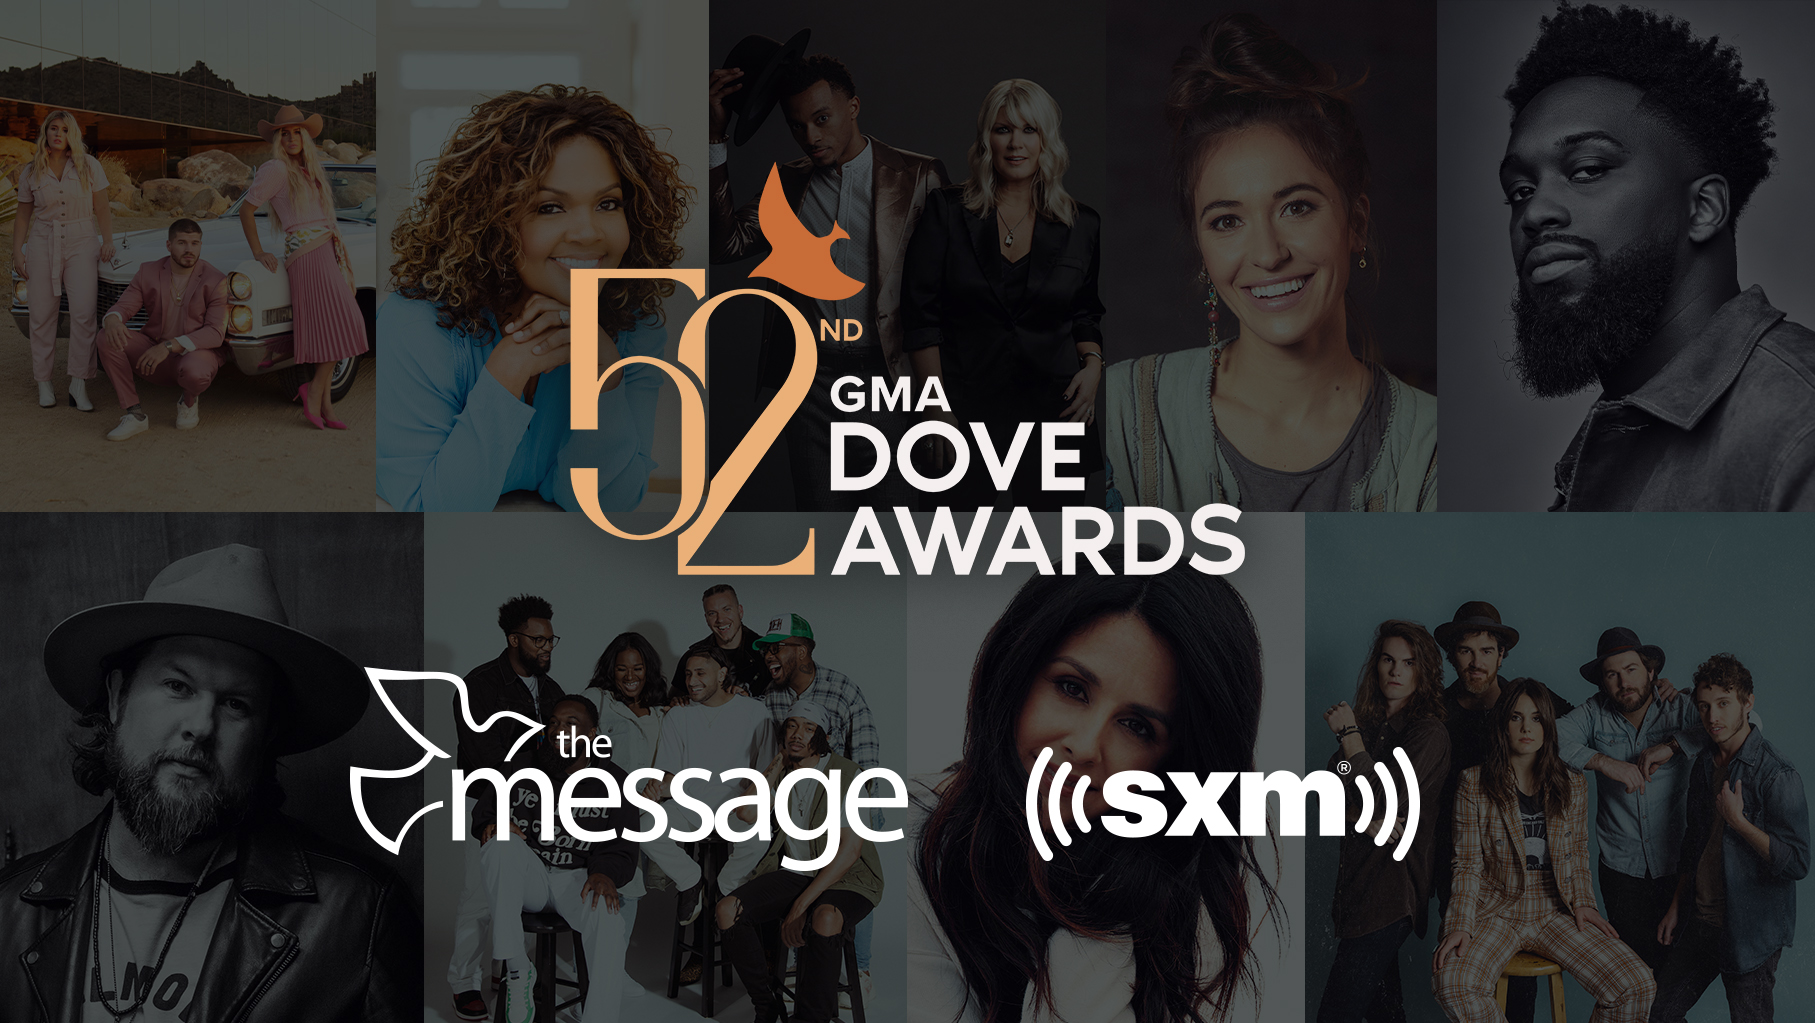 Feel inspired by this year's Dove Awards featuring Lauren Daigle & more gospel stars